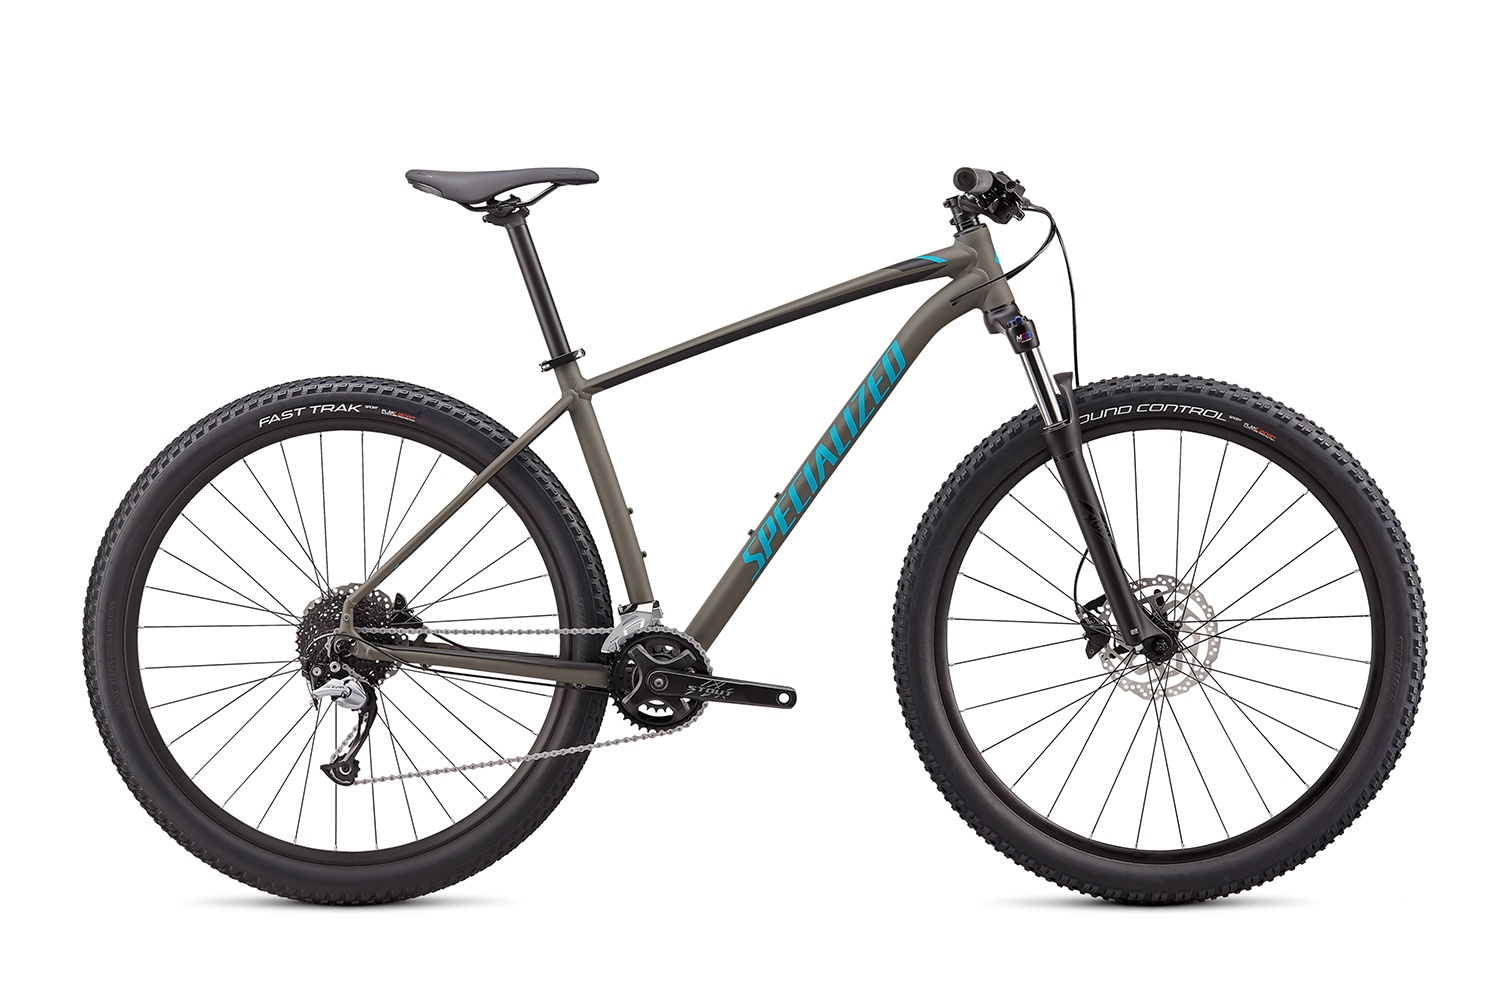 Specialized Rockhopper Comp 29 2X рама XL (2020) зеленый/синий